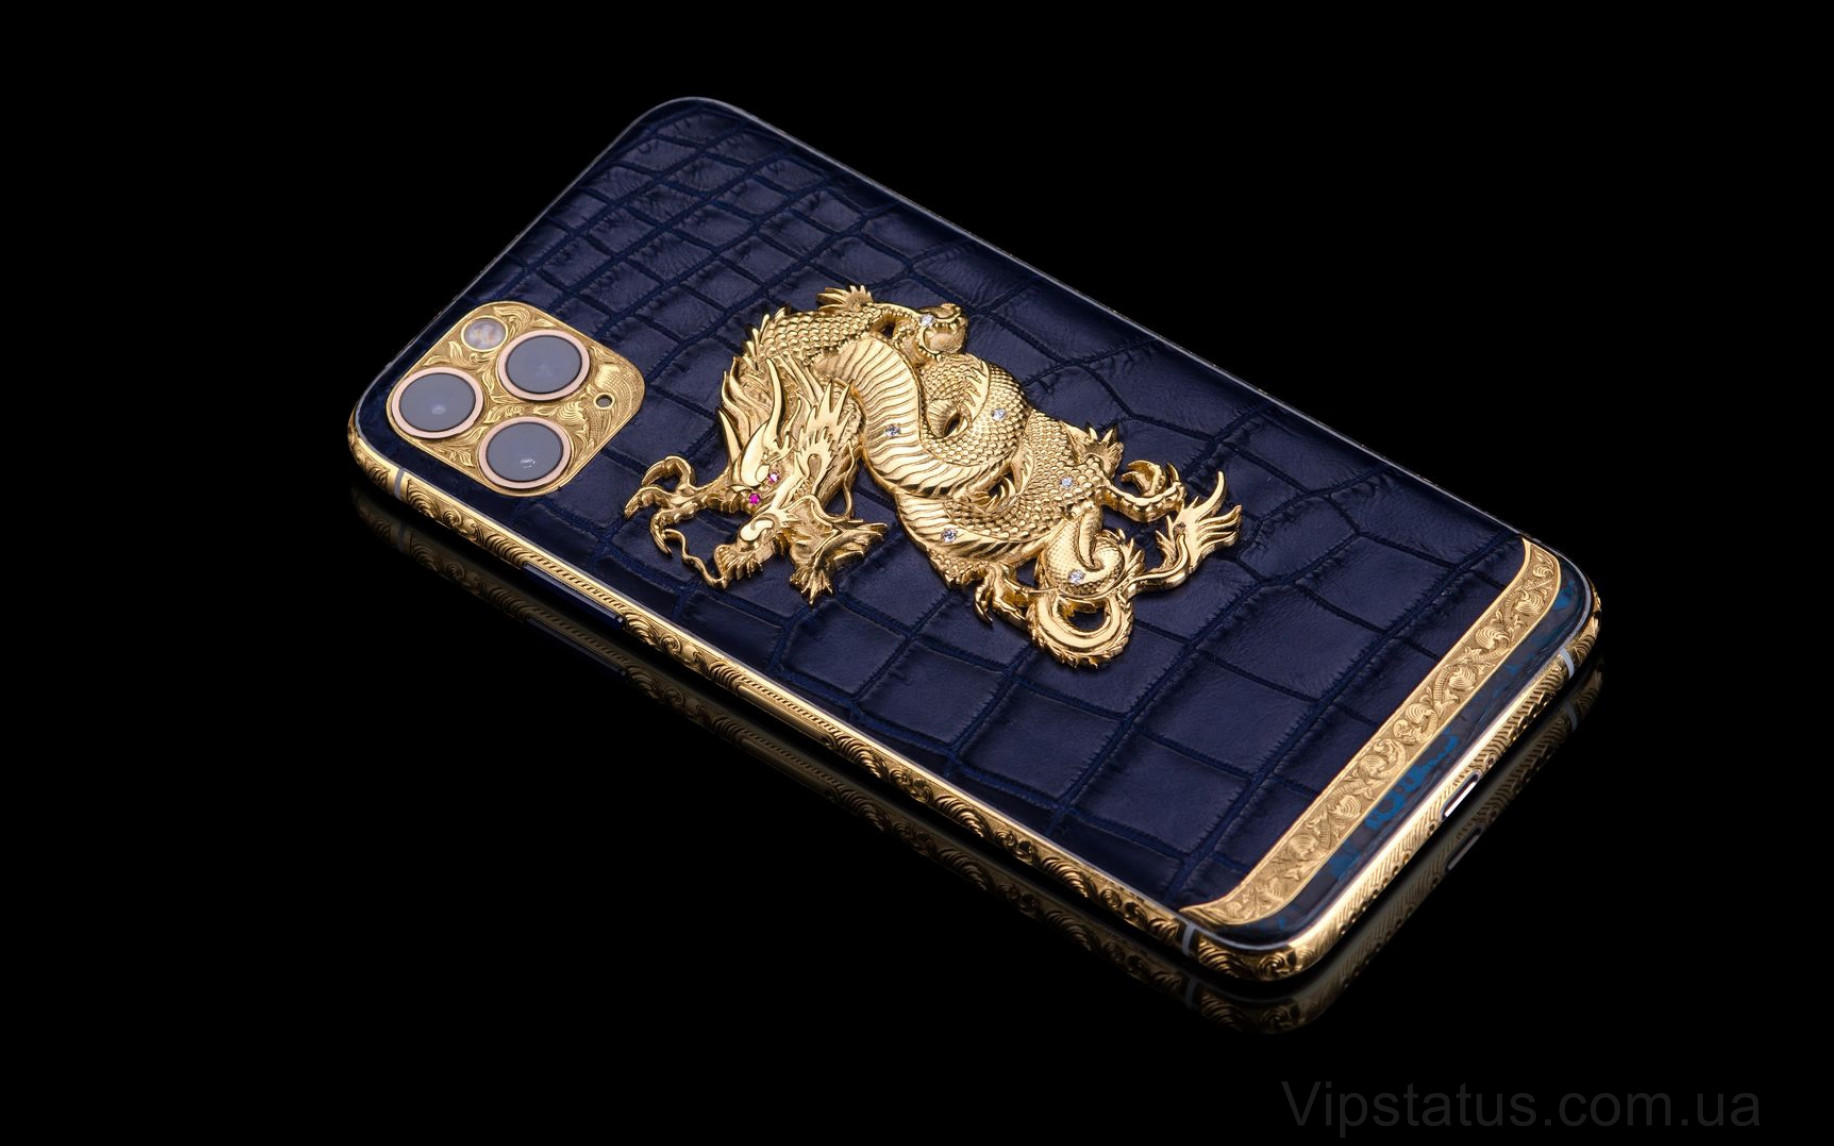 Elite Oriental Dragon IPHONE 11 PRO MAX 512 GB Oriental Dragon IPHONE 11 PRO MAX 512 GB image 3